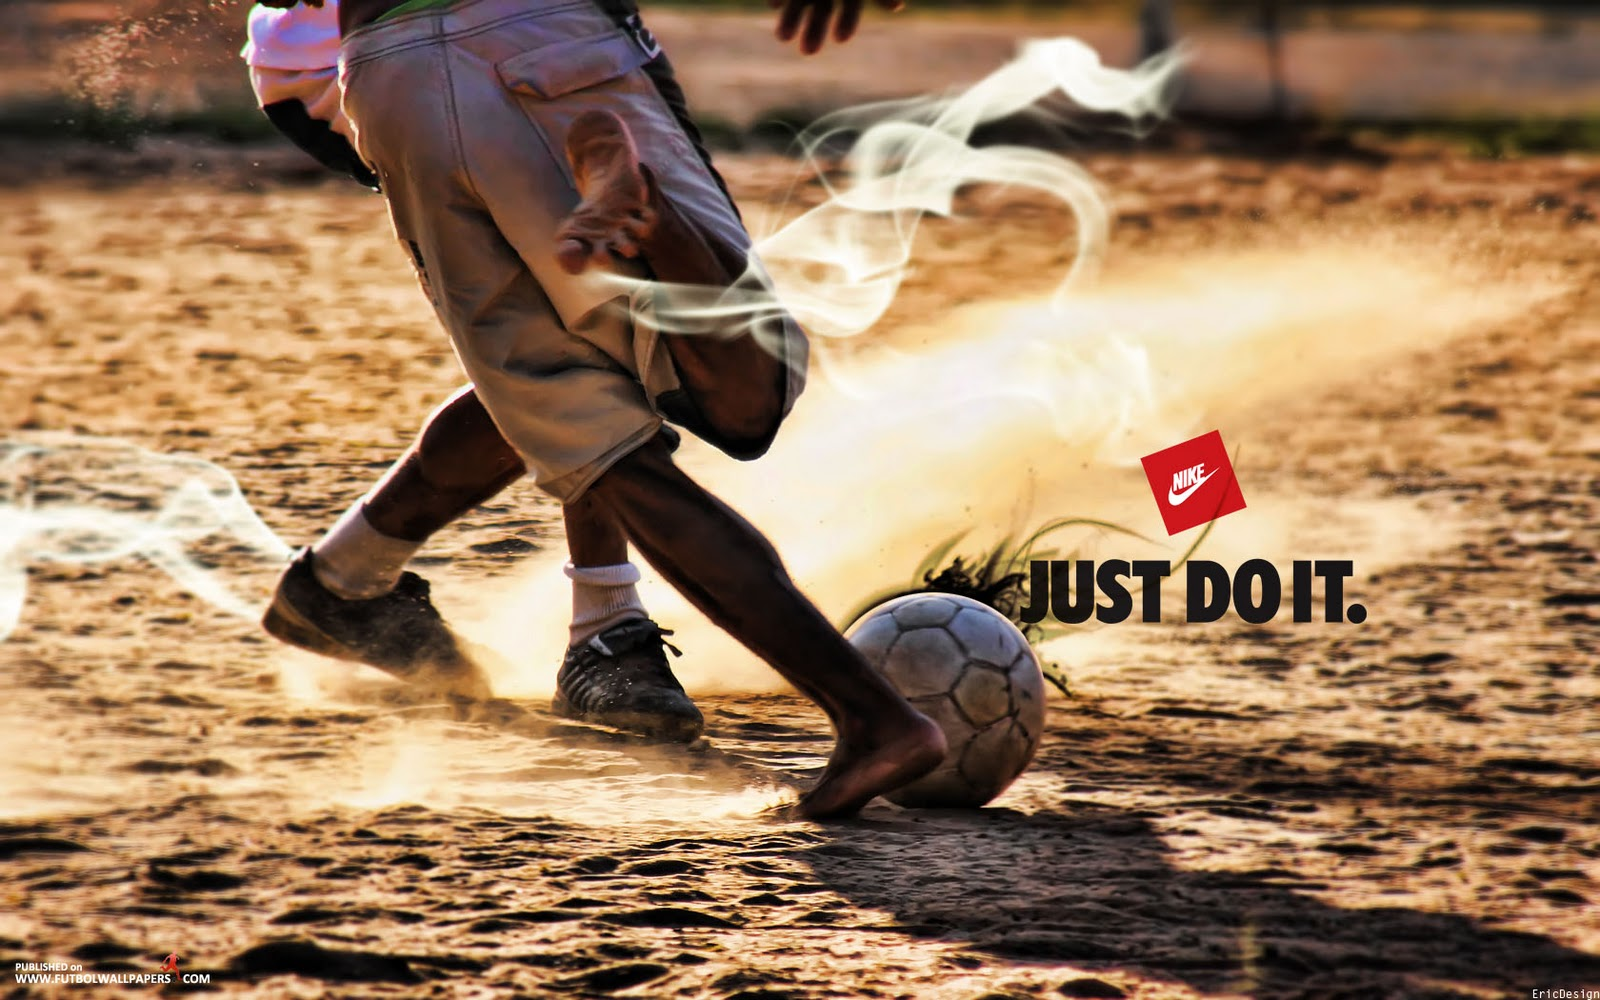 Stephs crochet life just do it in 1988 nike released its famous just do it campaign throughout the years we have come to know the campaign for its visual images messages and motivation voltagebd Images